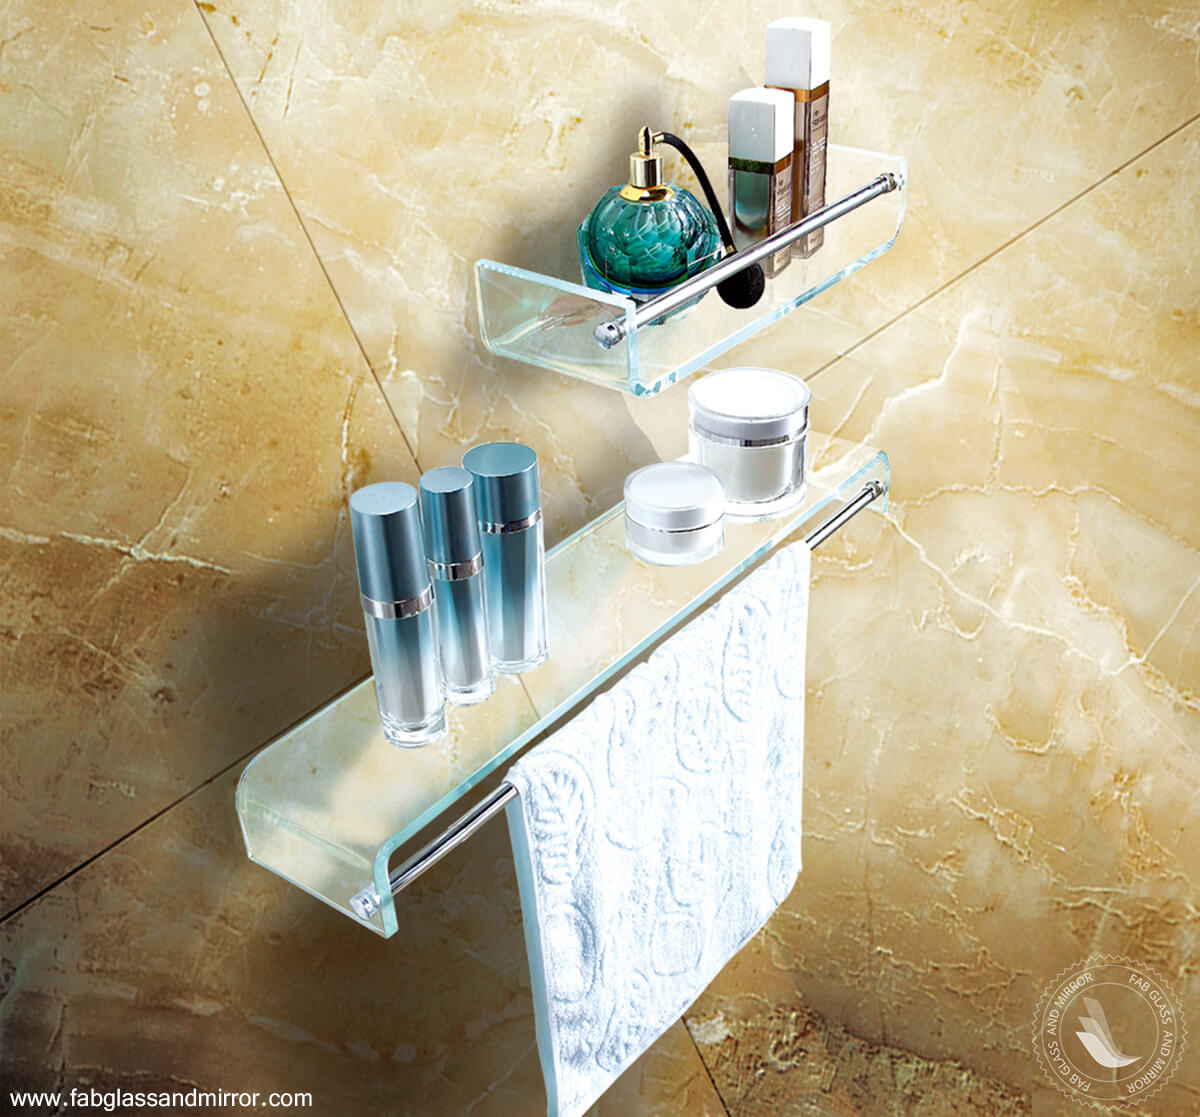 3. Make your small bathrooms functional (1)